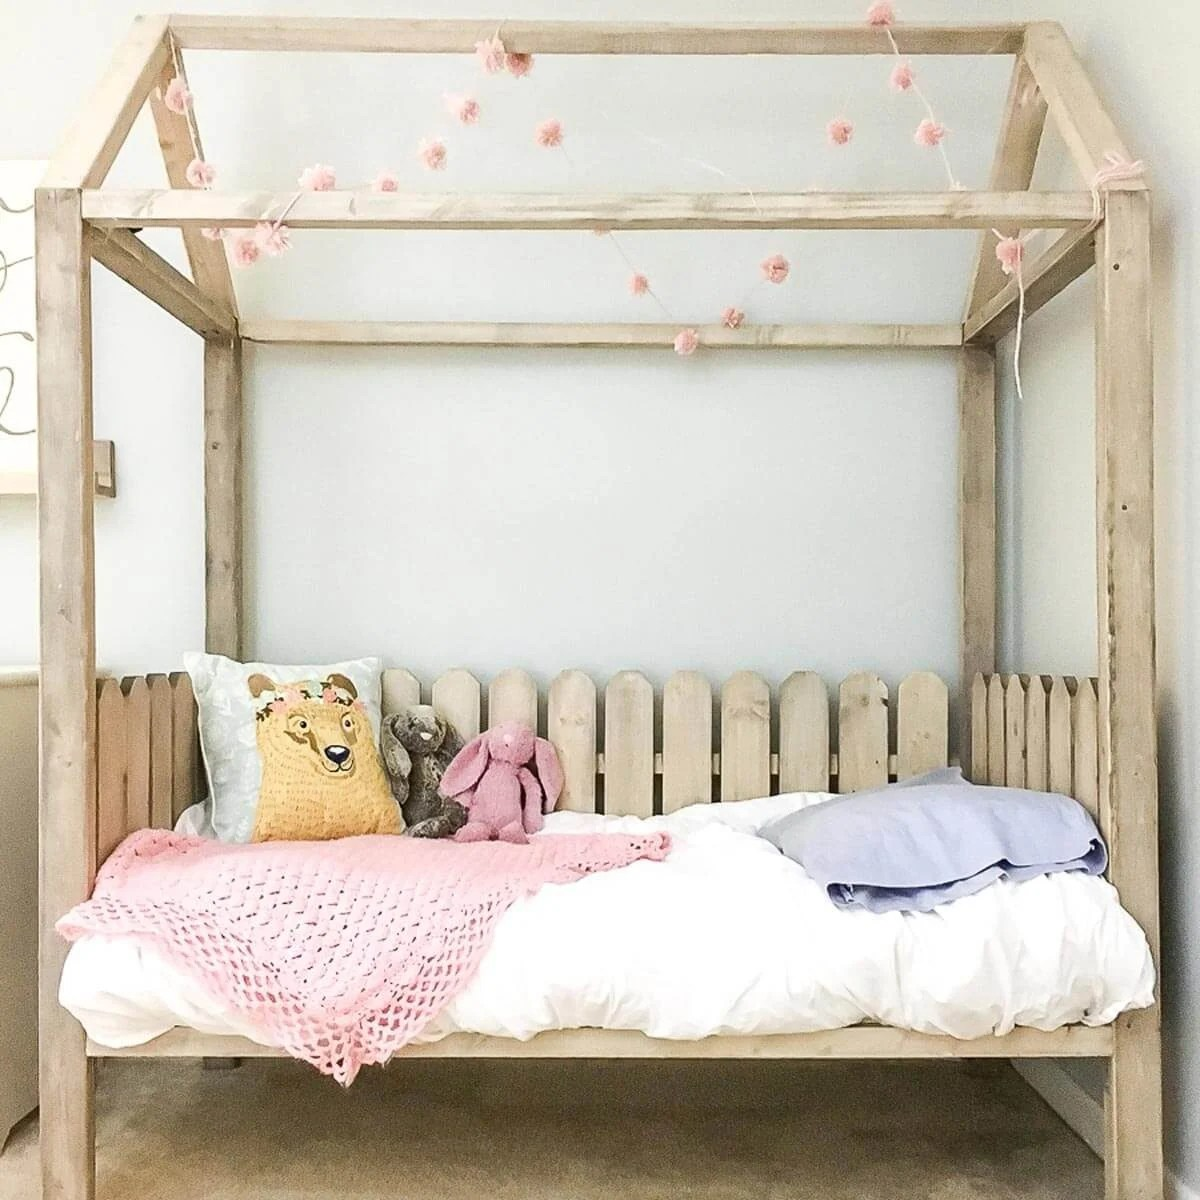 Diy Minimalist Bed Frame 11 Great Diy Bed Frame Plans And Ideas The Family Handyman